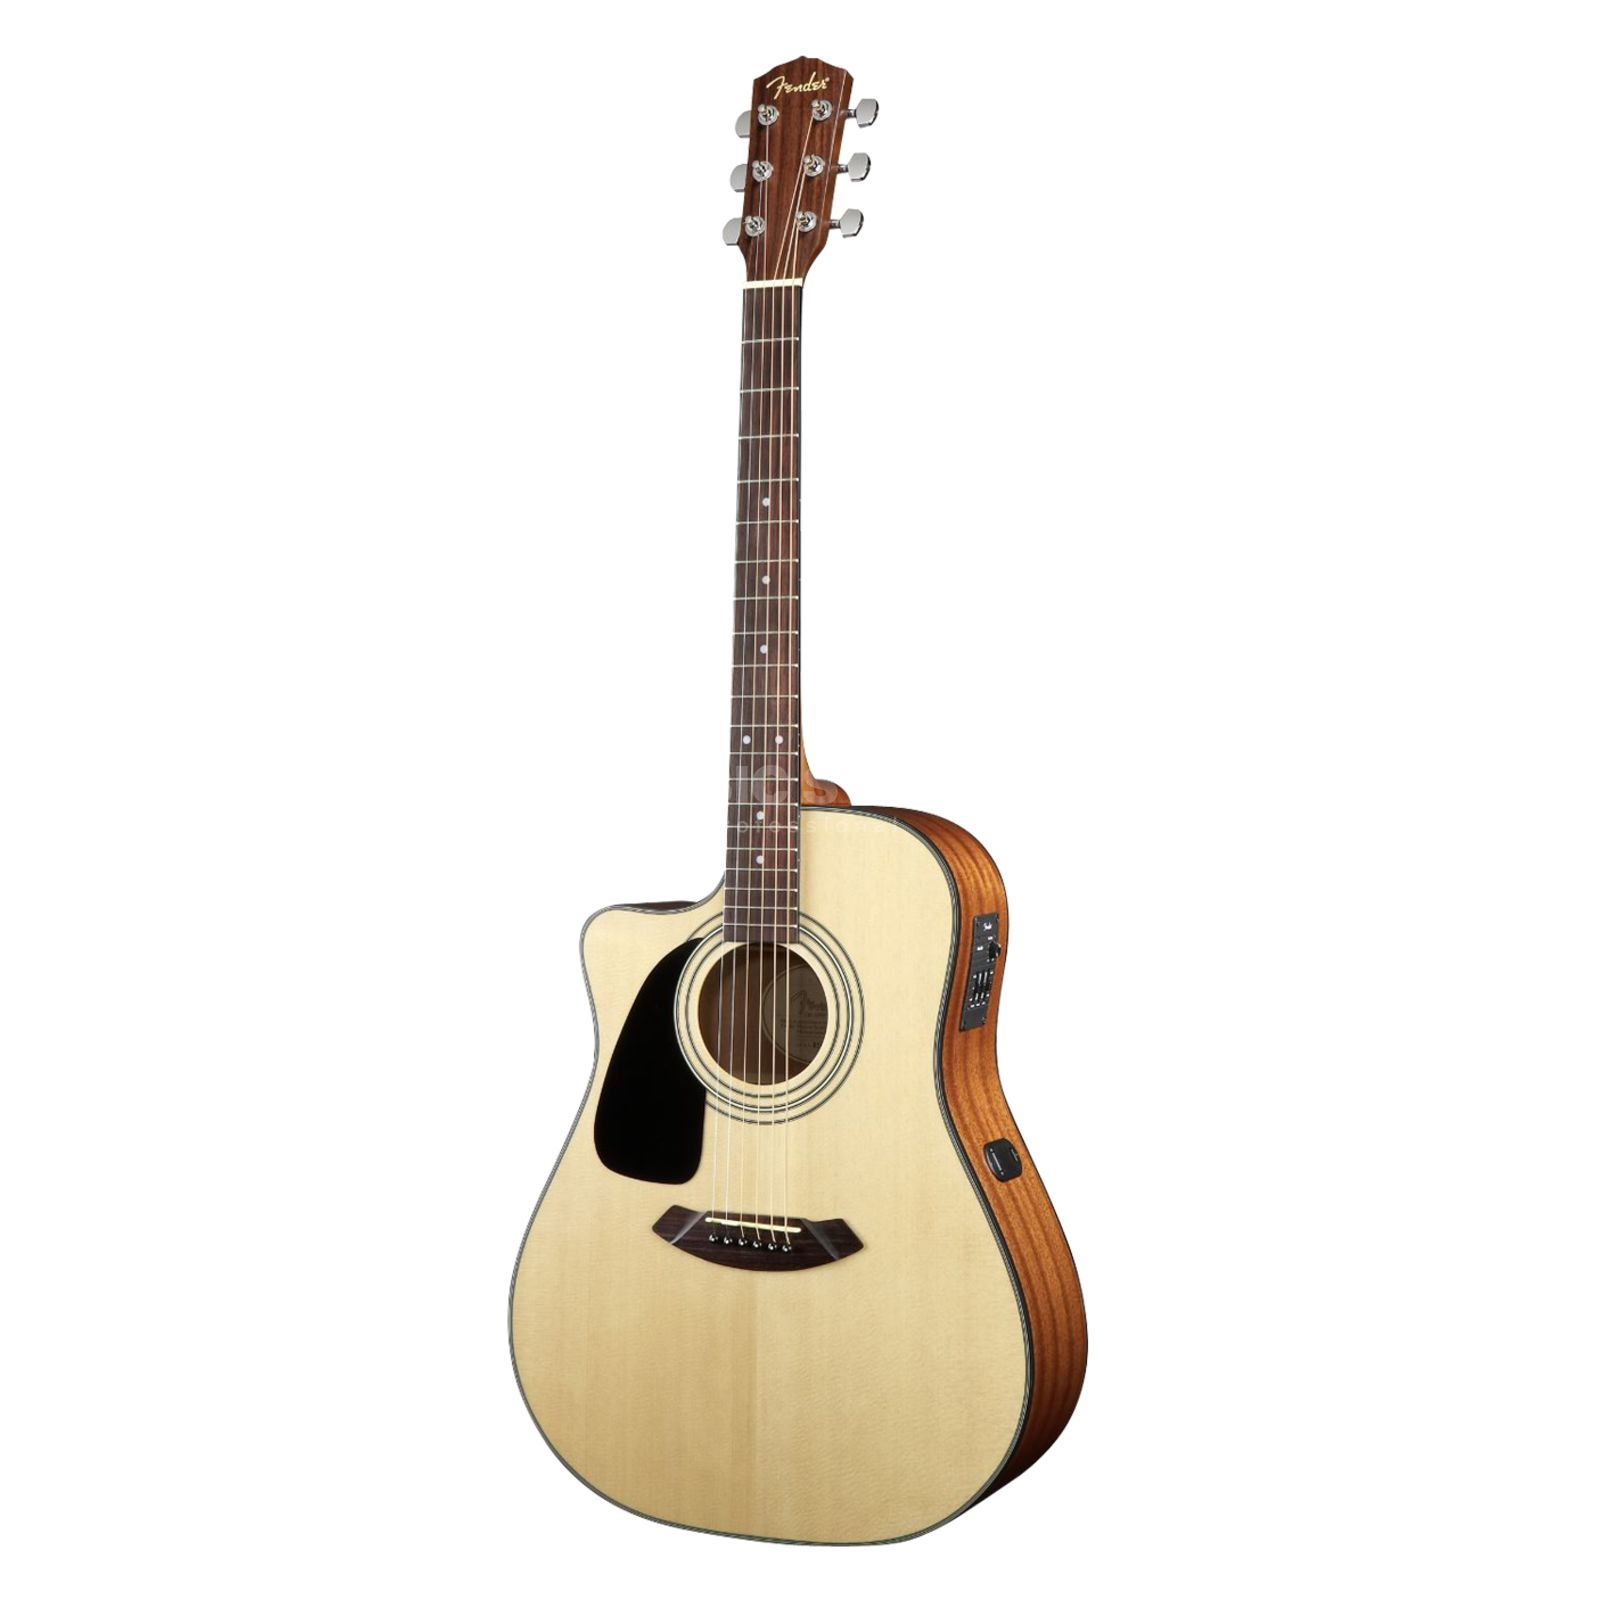 Fender CD-100CE LH Left Handed Electr o Acoustic Guitar, Natural   Produktbillede